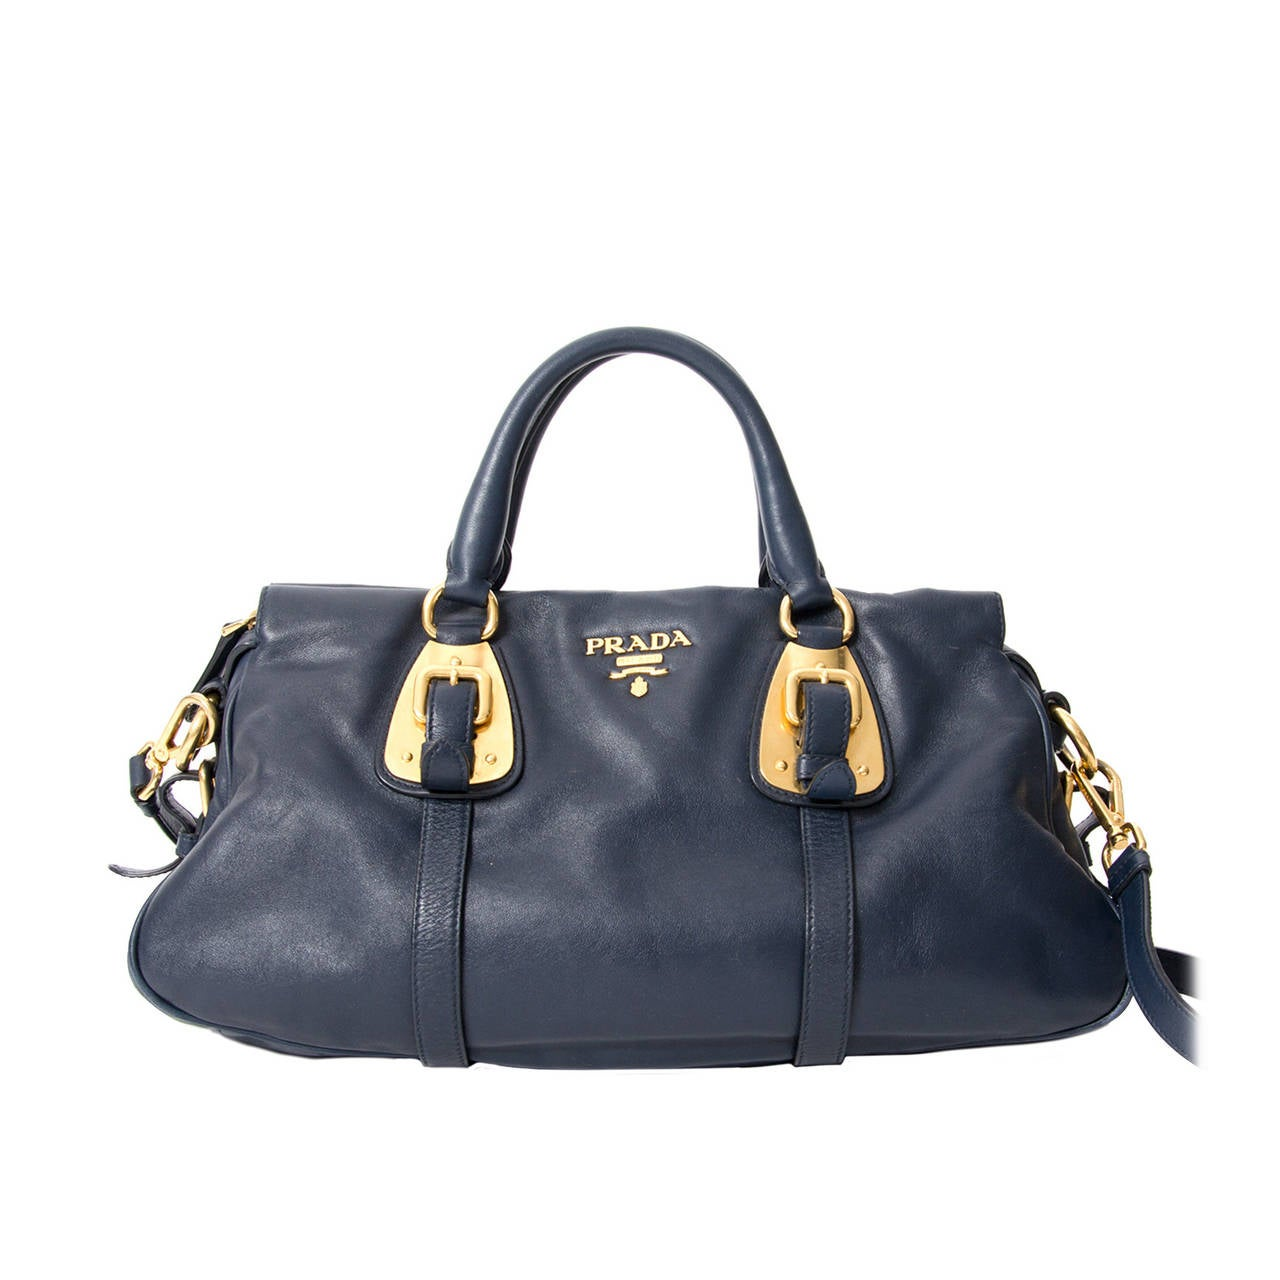 4197c5803890 Prada Bag Gold Buckle | Stanford Center for Opportunity Policy in ...